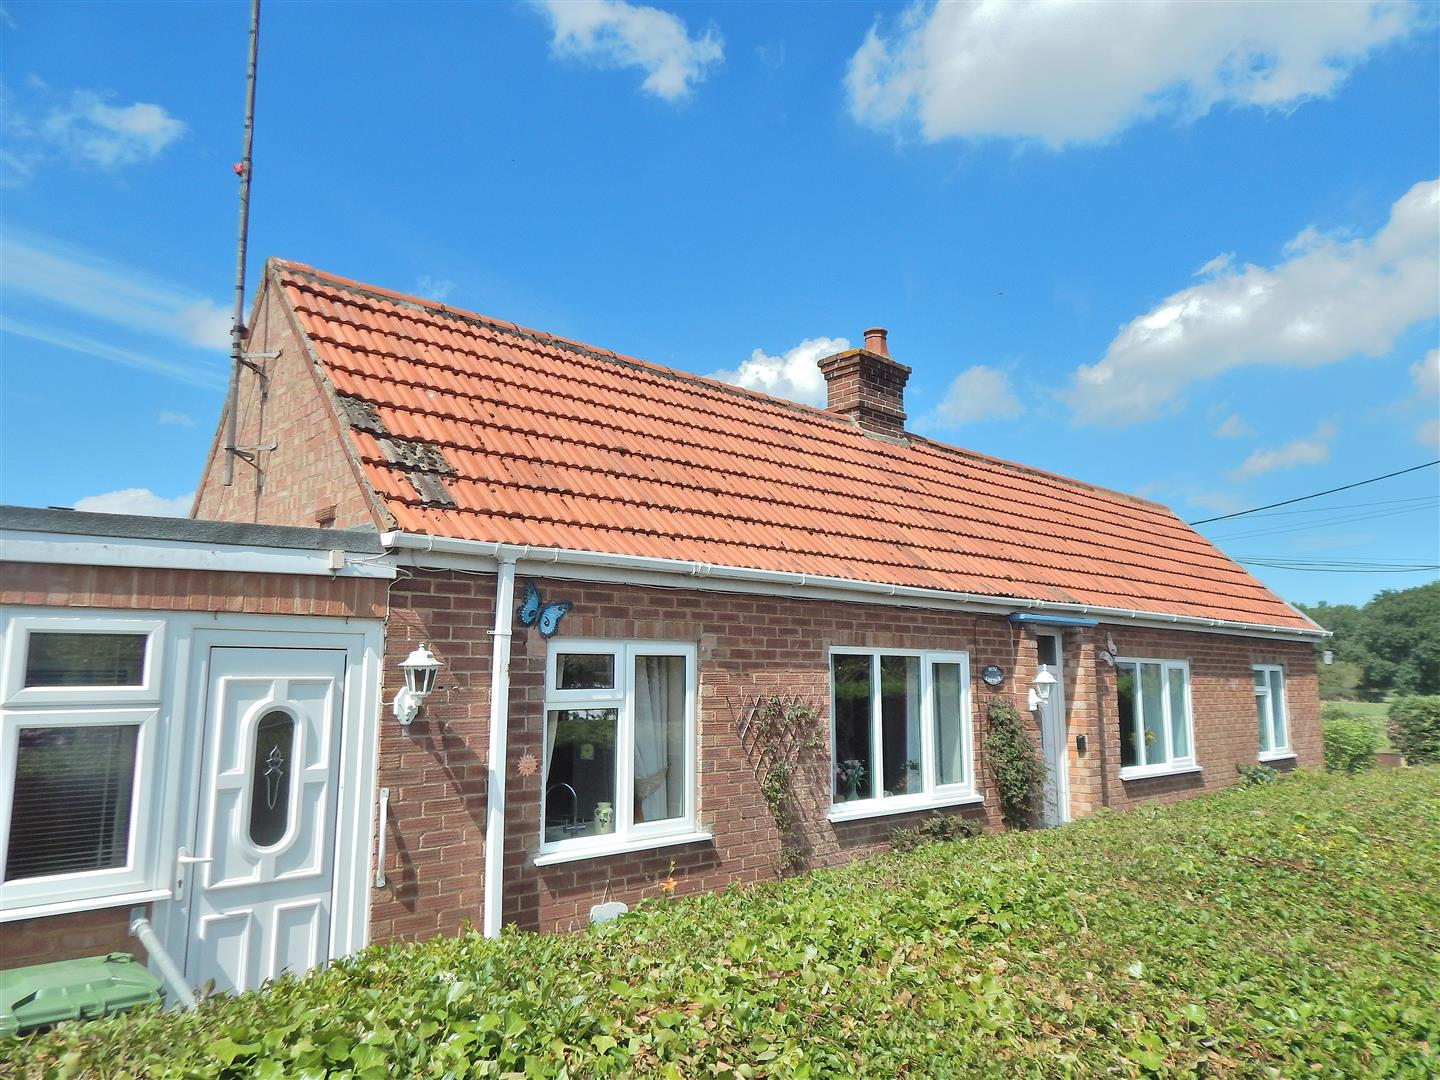 2 bed detached bungalow for sale in King's Lynn, PE31 6NJ 0